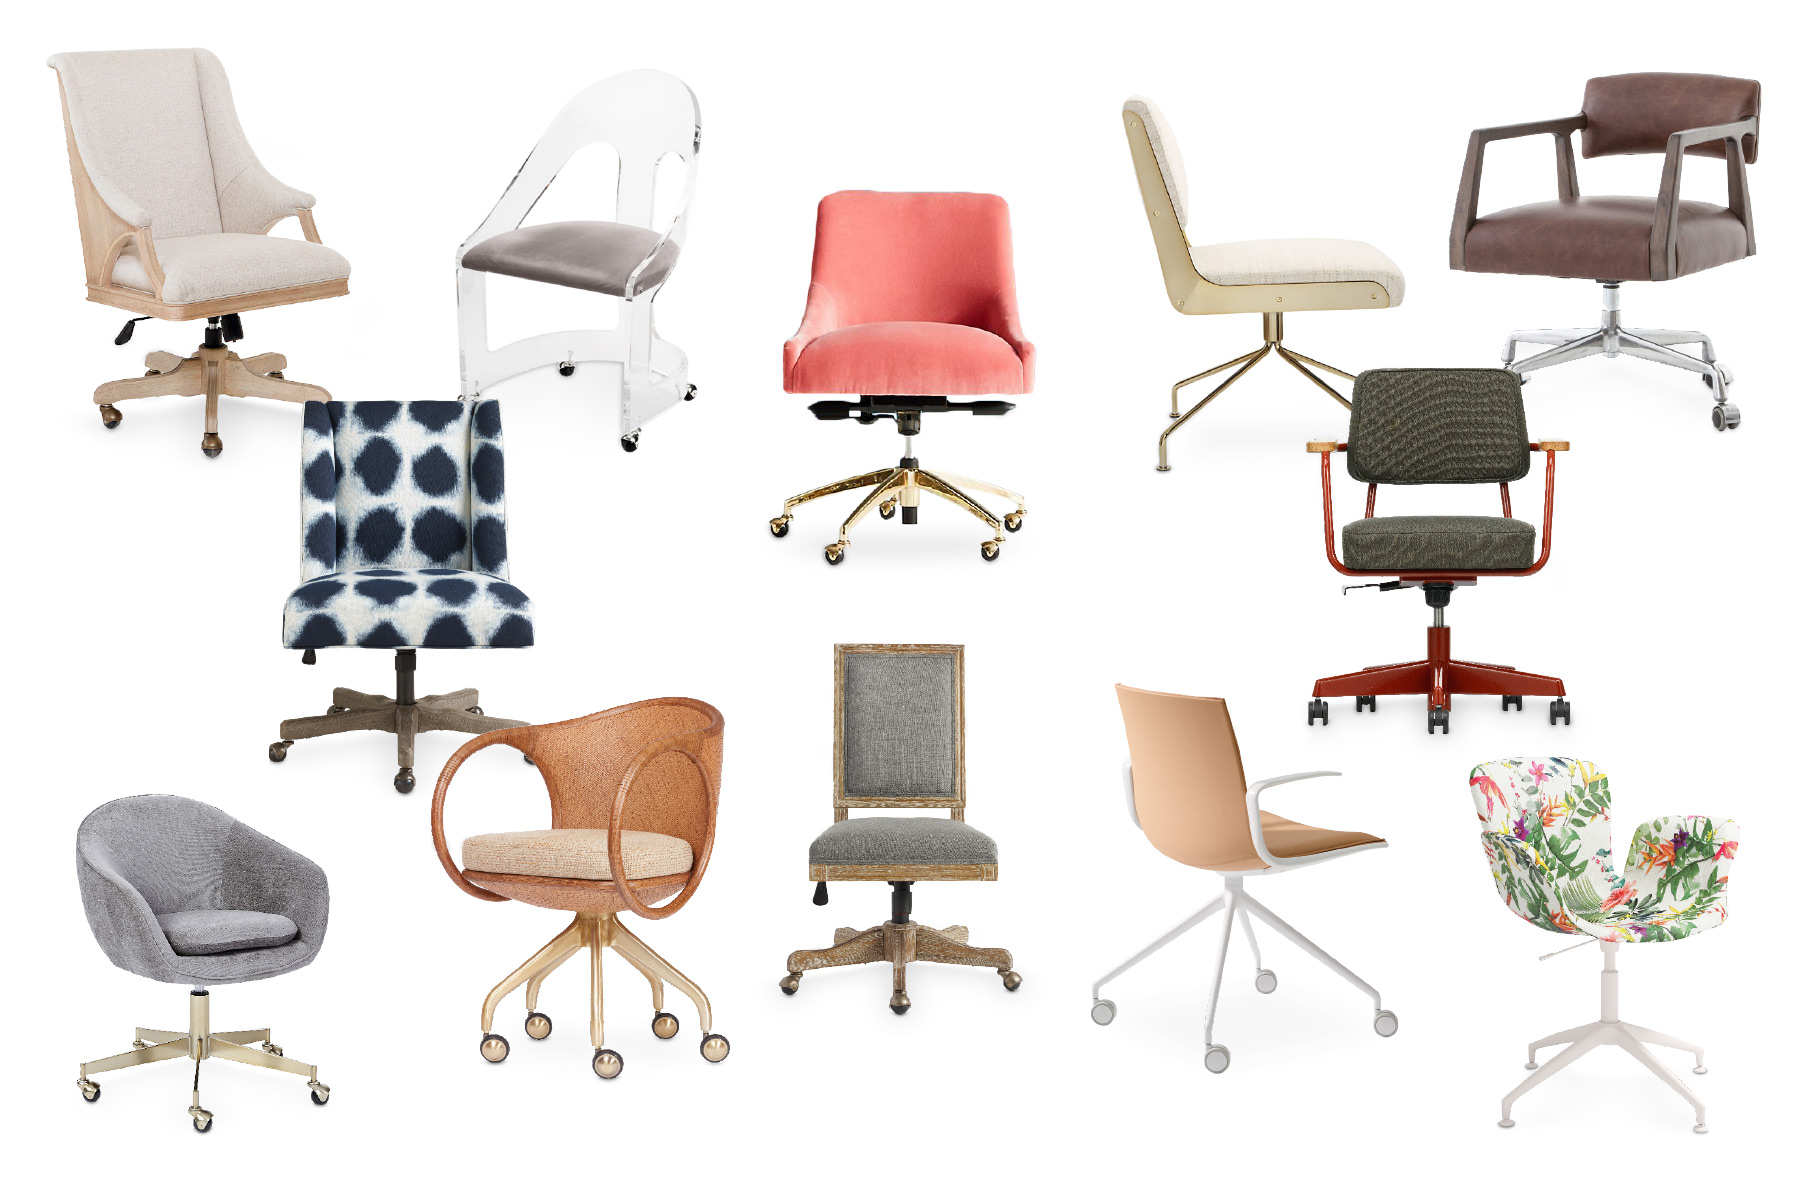 38 Stylish Desk Chairs That Get the Job Done - D Magazine